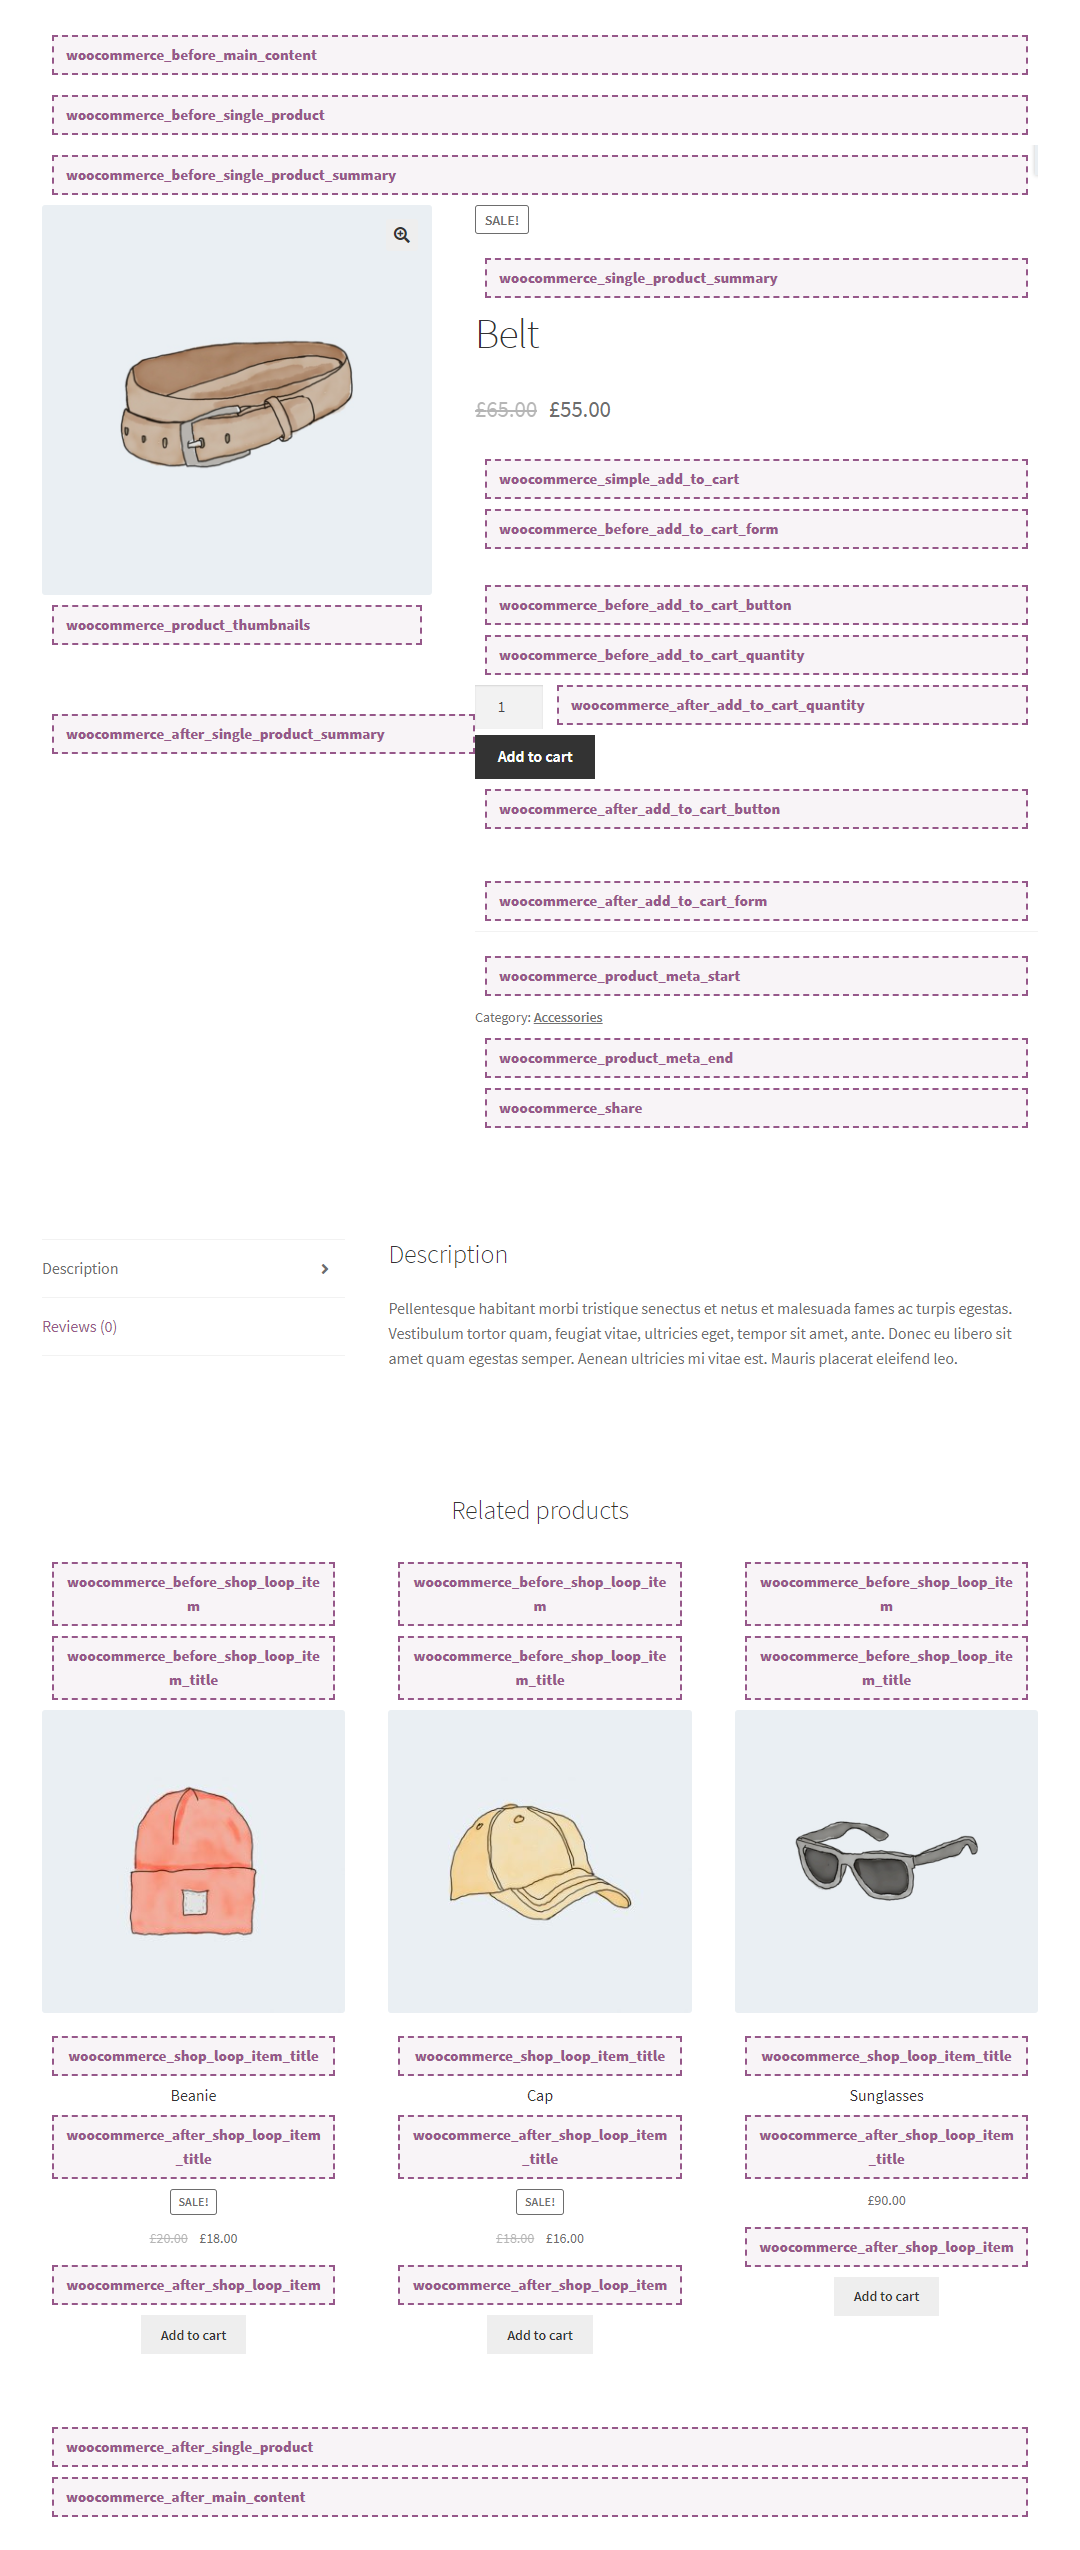 Active WooCommerce plugin's Action Hooks in Single Product Page.